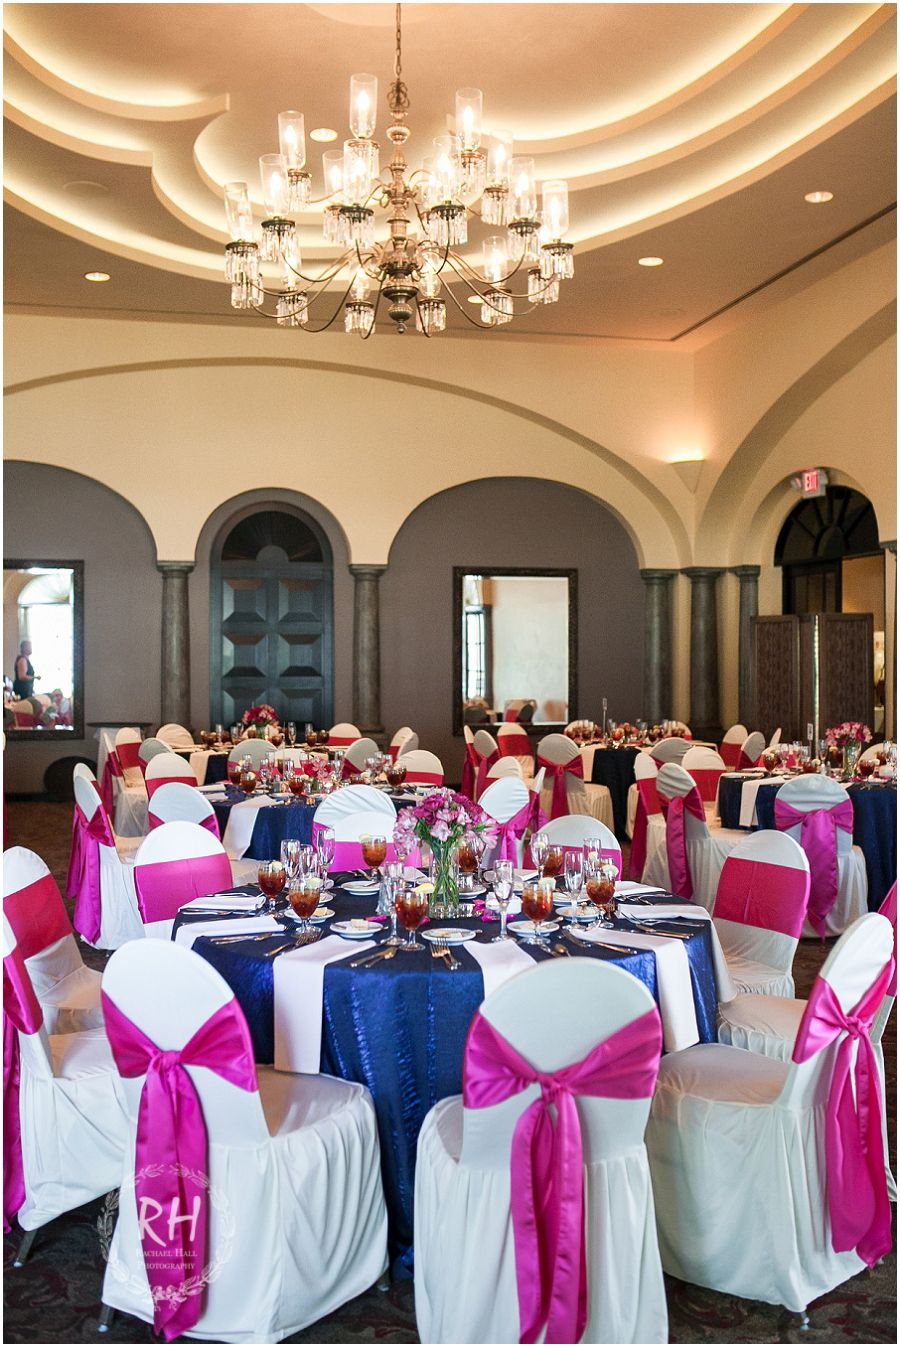 Blue and white wedding decor  Navy blue and hot pink wedding reception colors at The Club at